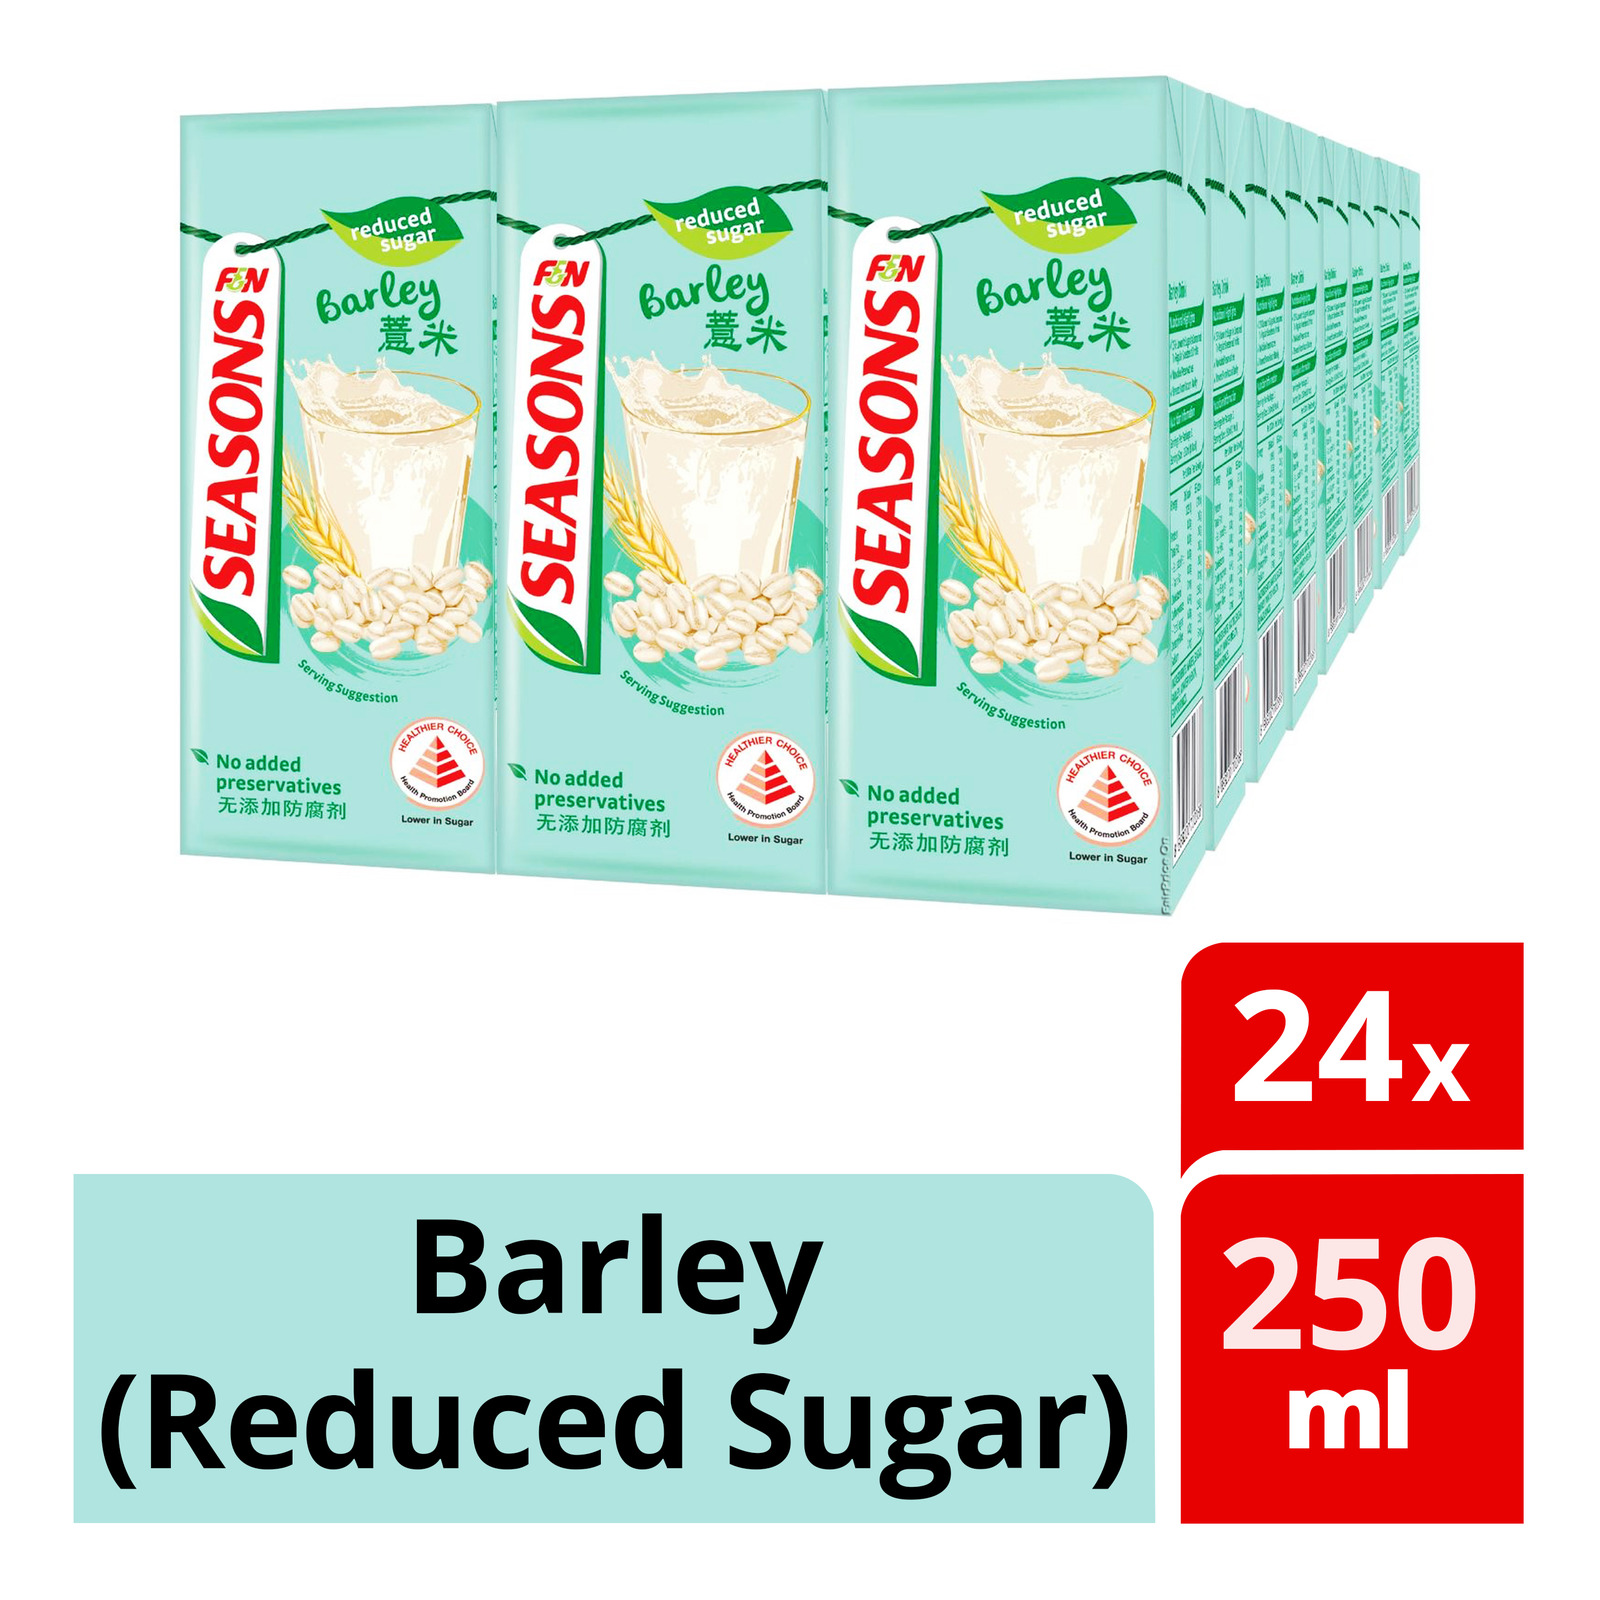 F&N Seasons Packet Drink - Barley (Reduced Sugar)